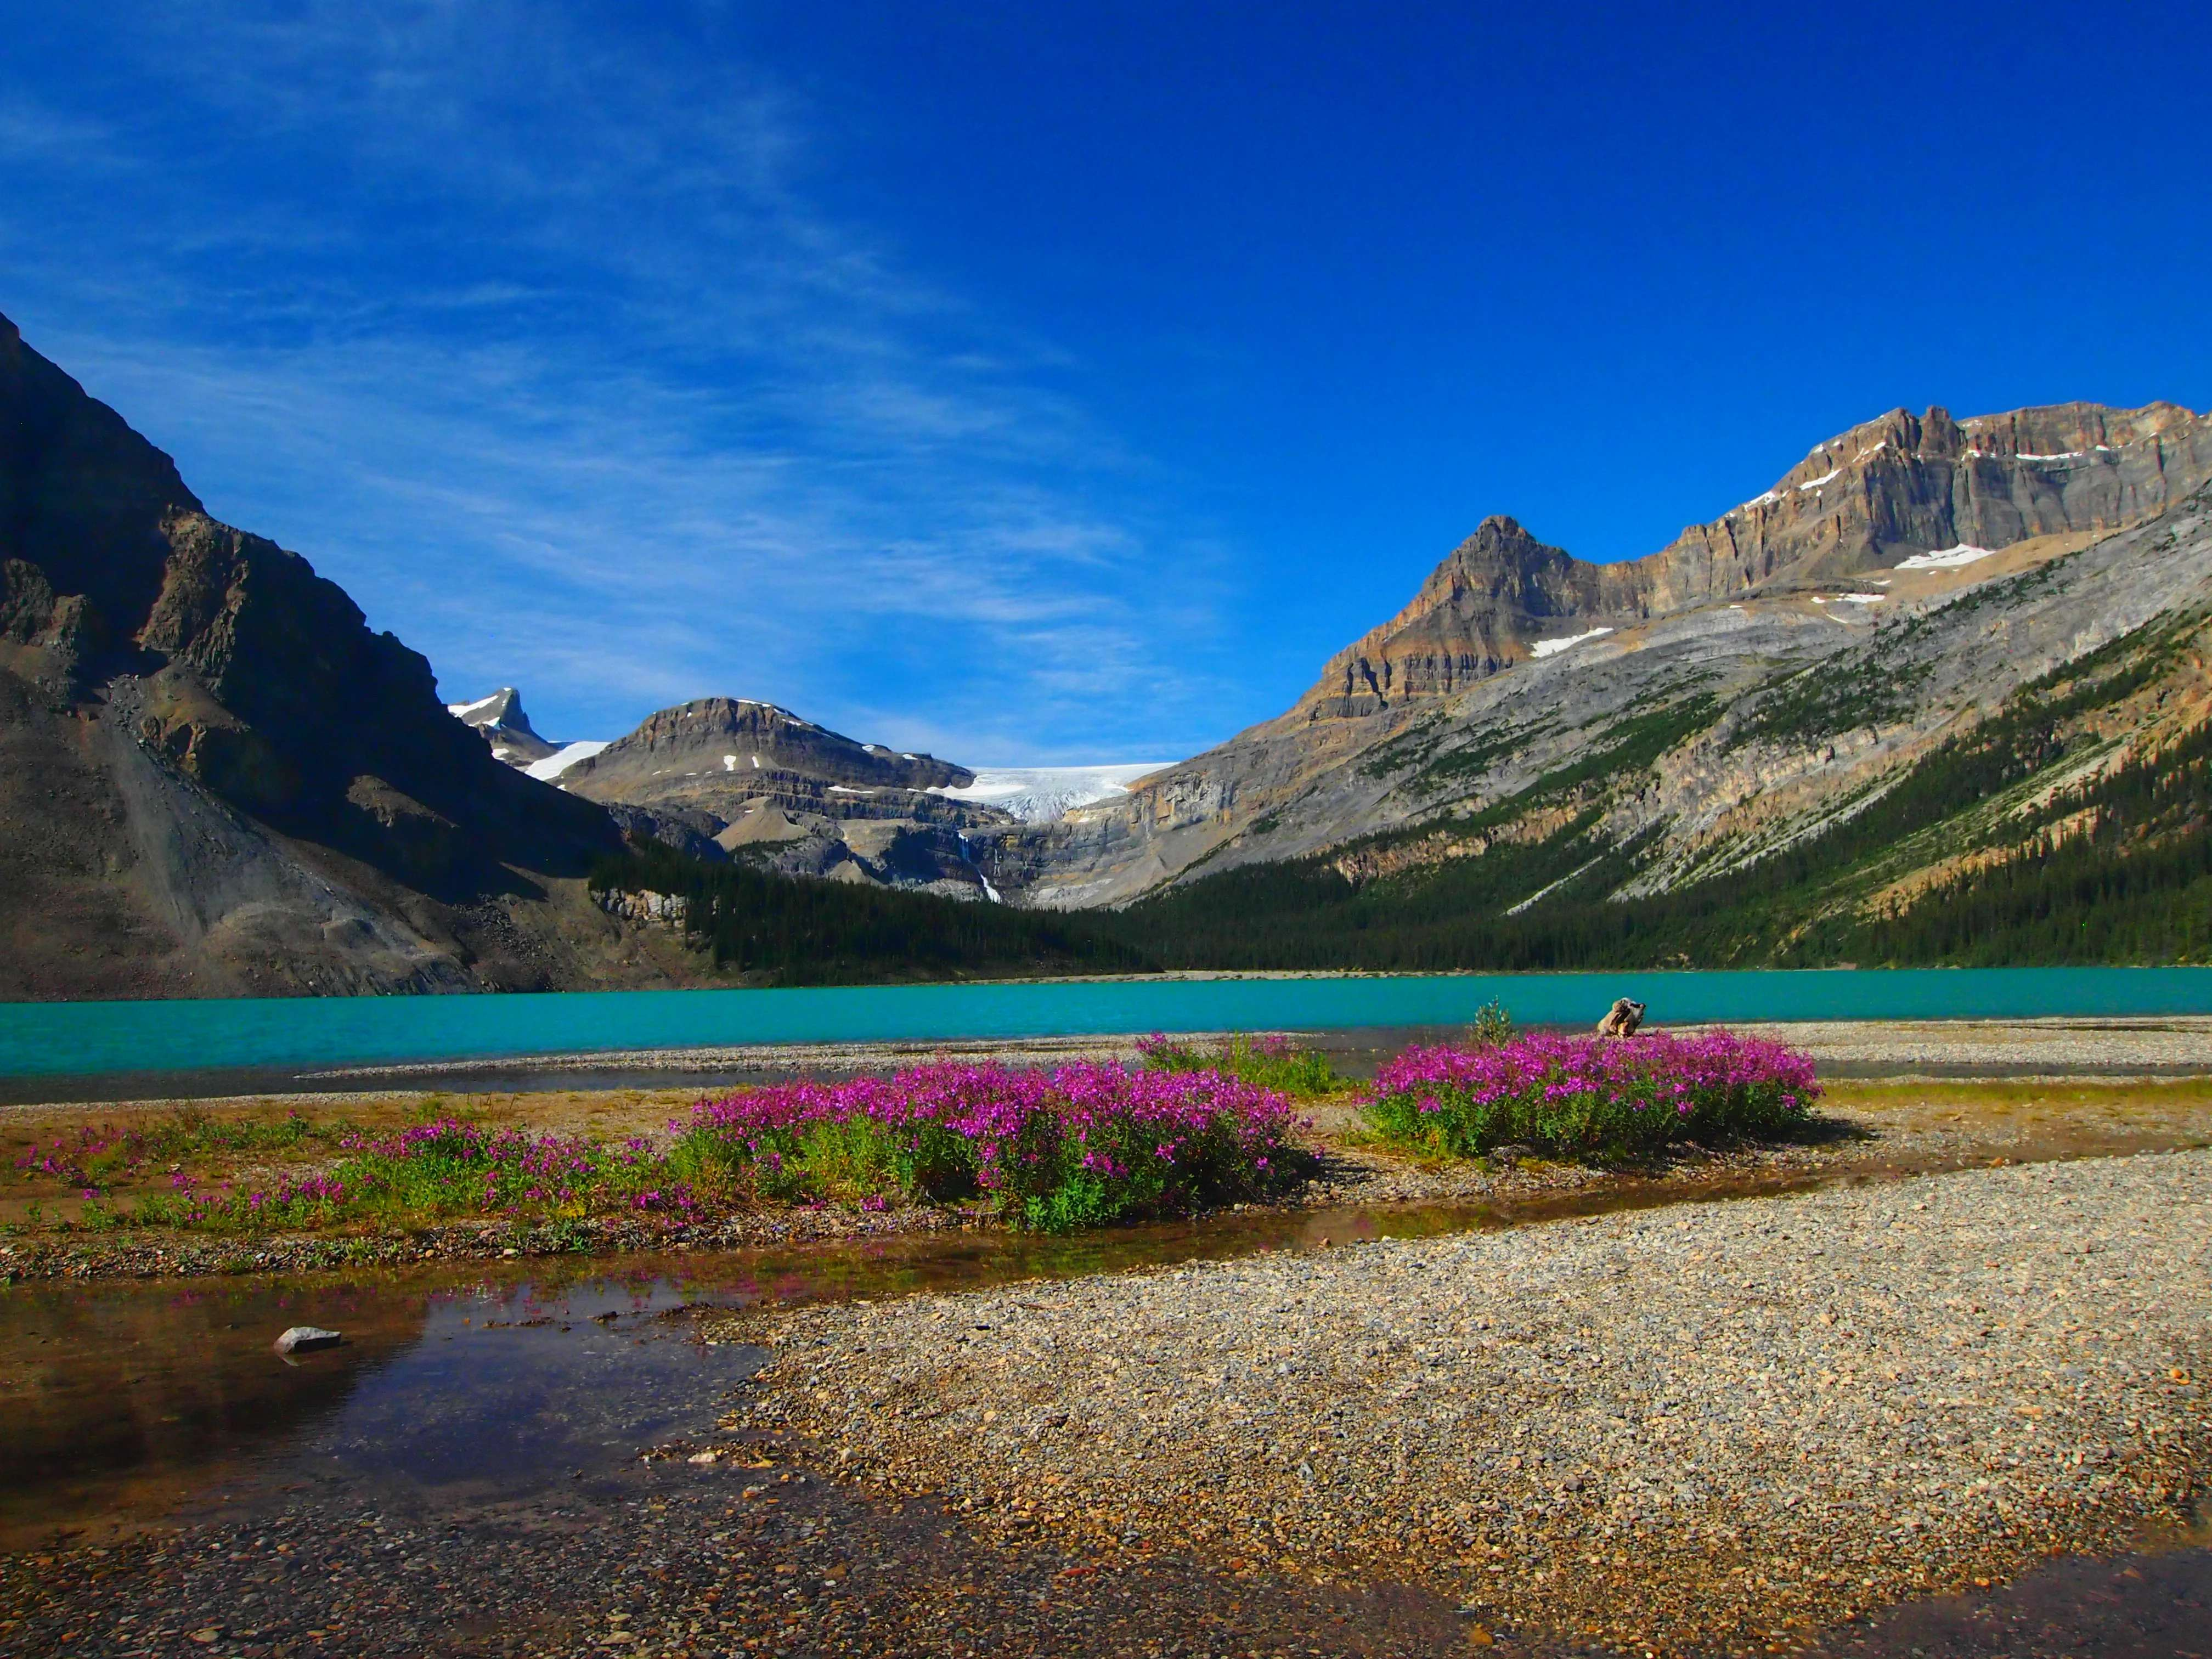 Banff National Park: Planning the Perfect Summer Family Vacation